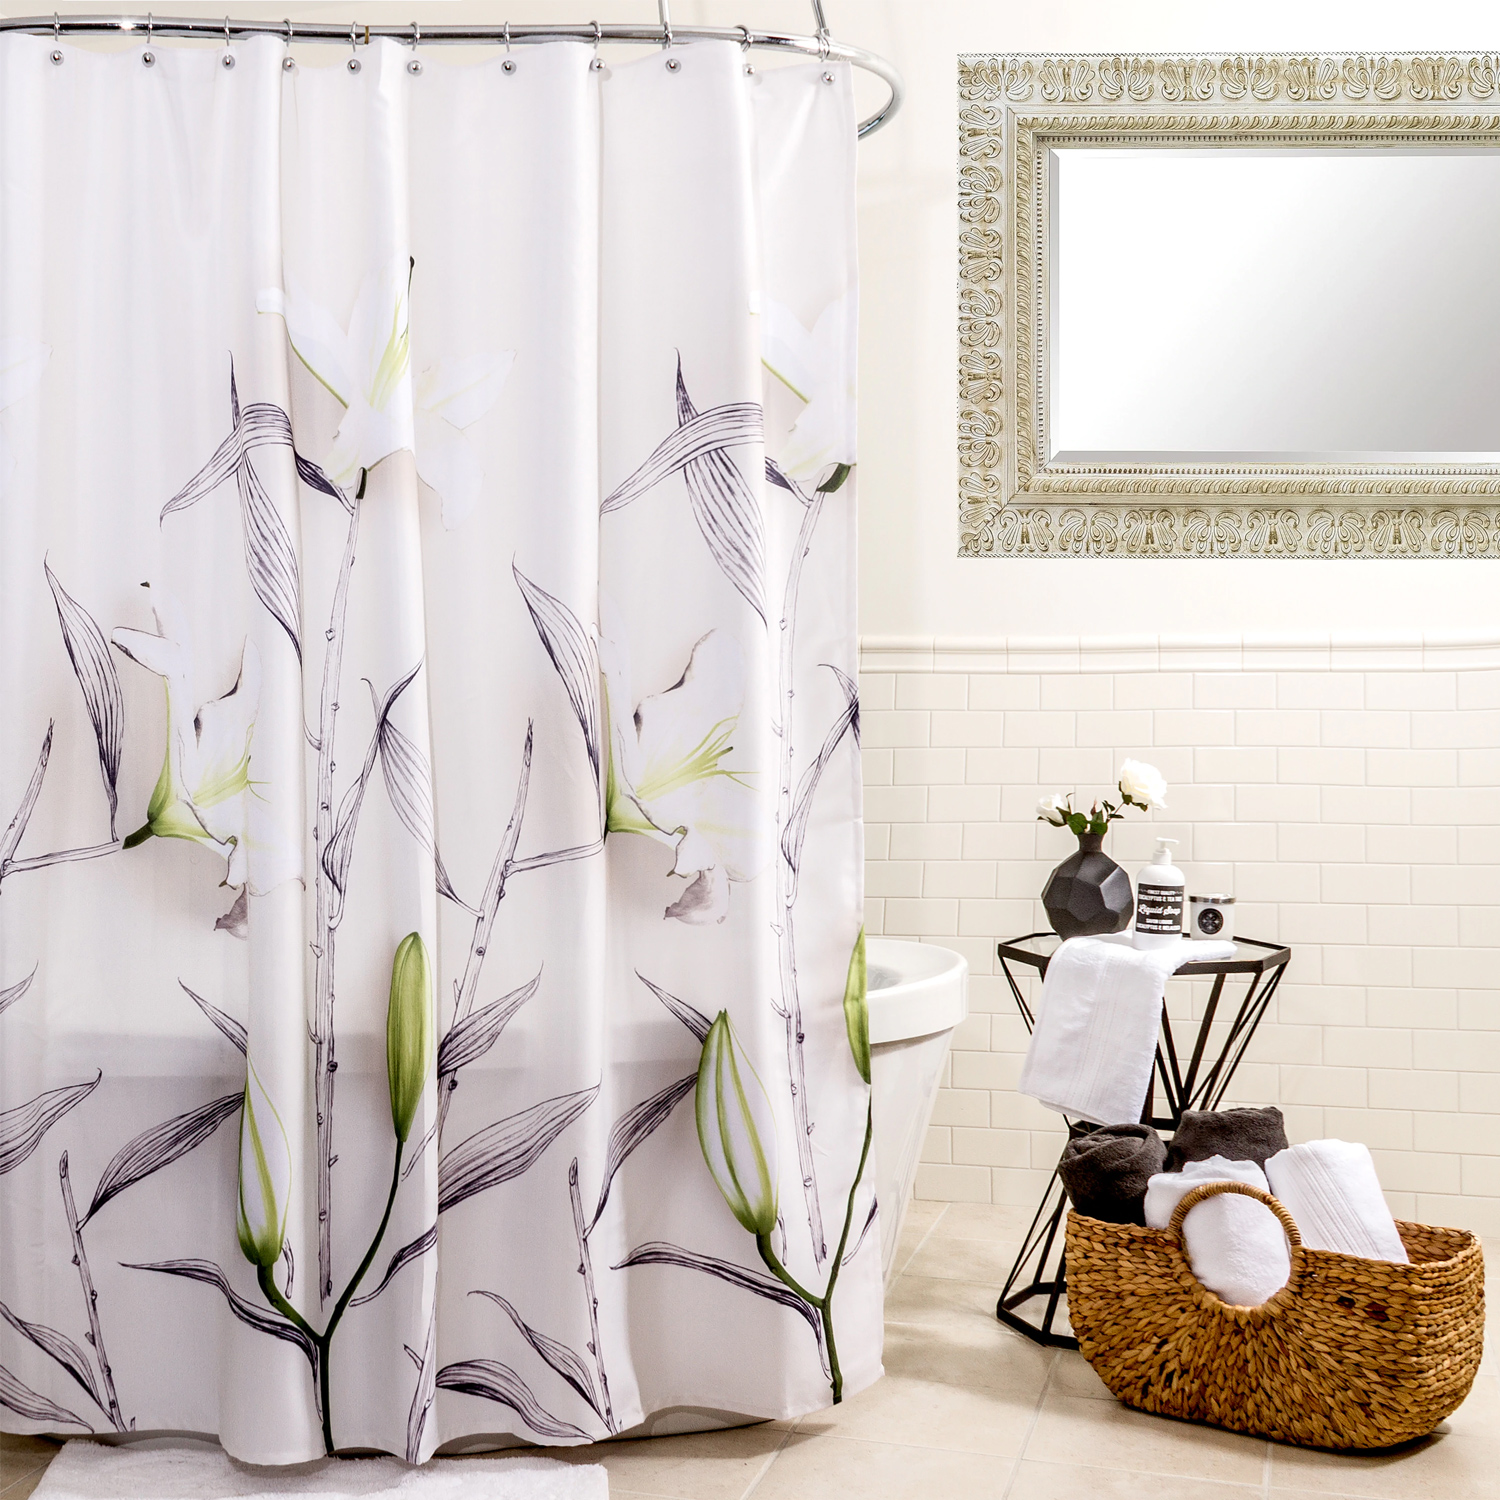 Details About Lillies Floral Fabric Shower Curtain 70 X 72 White Splash Home